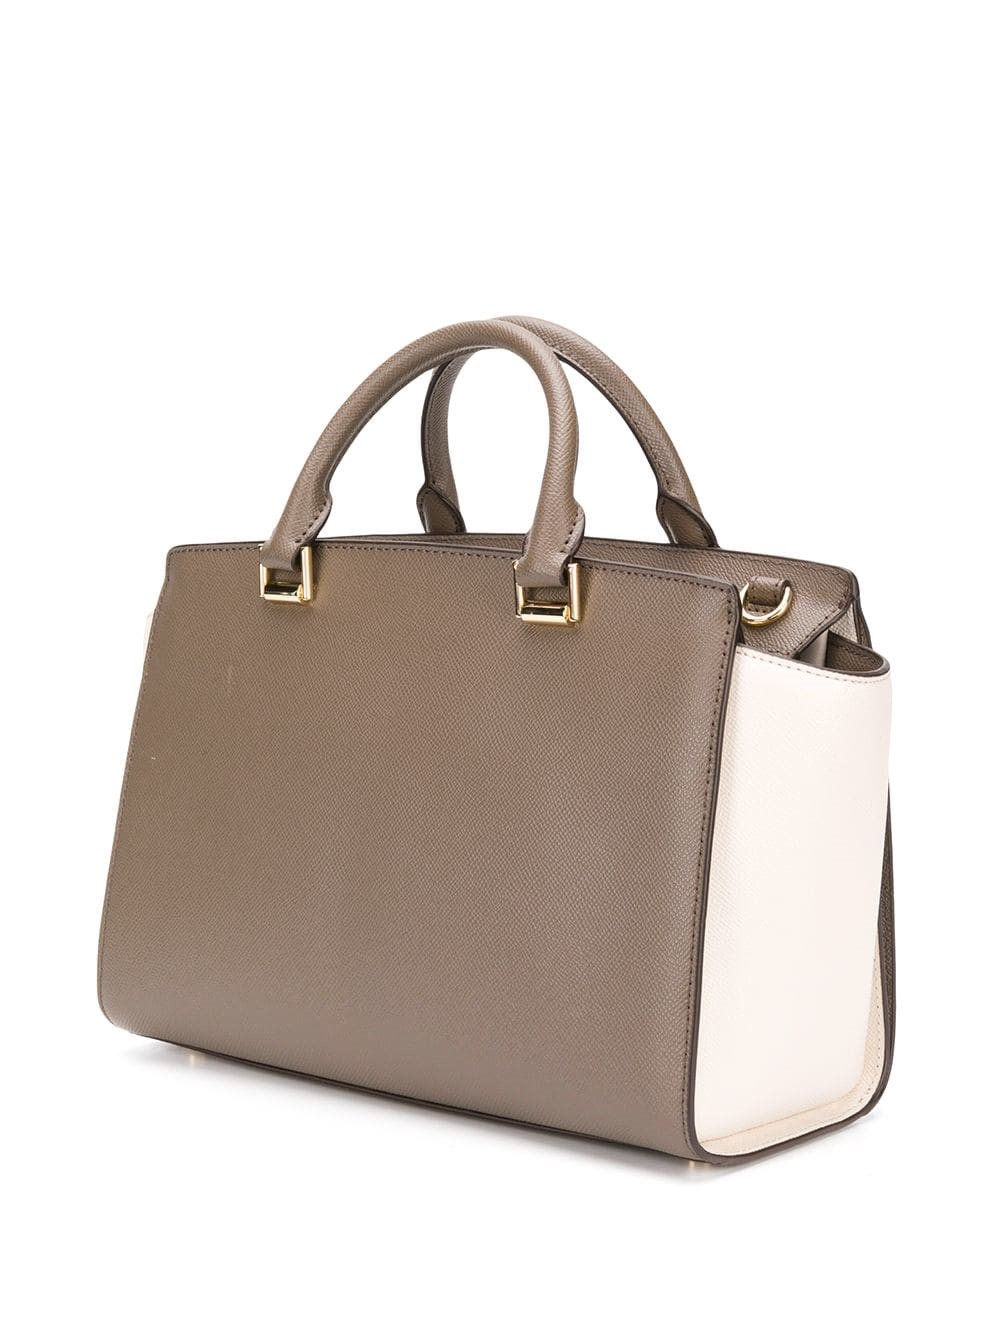 3e79fa5403a1 michael kors mk HANDLE BAG available on montiboutique.com - 27950